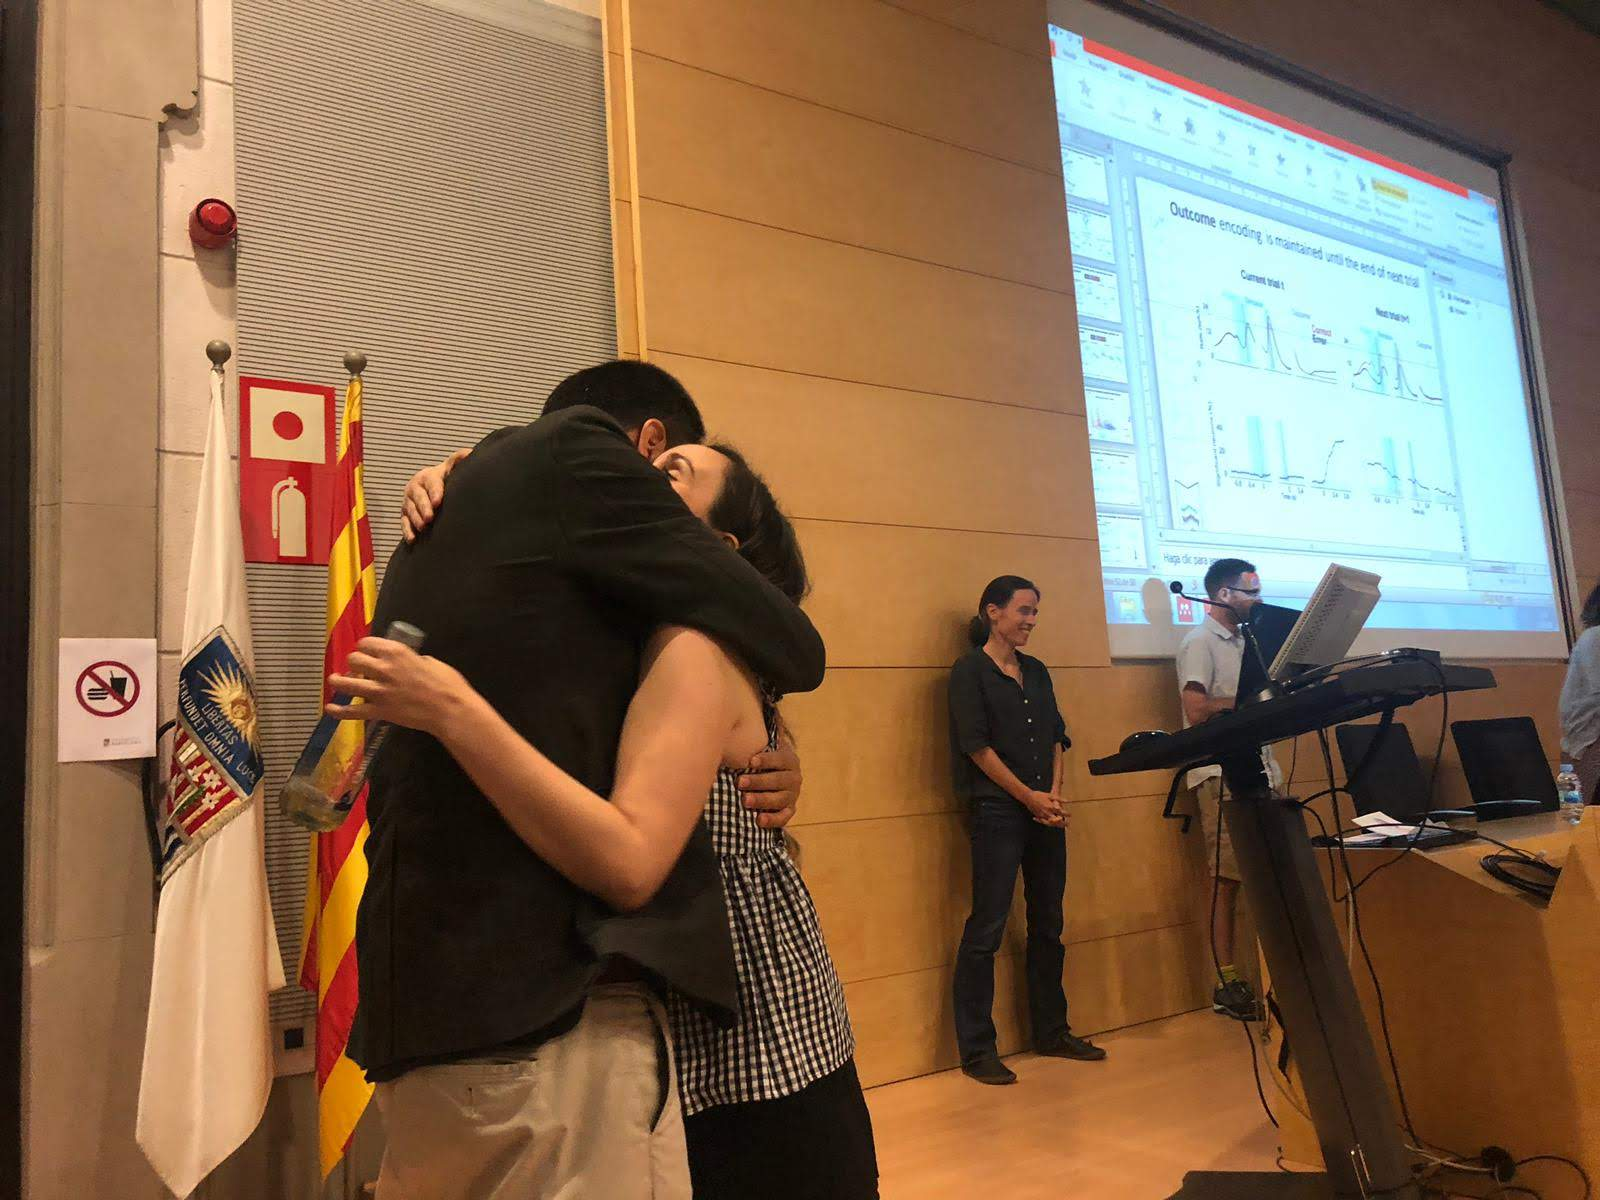 Hugs and kisses after succesfully defending. Congratulations Dr. Hermoso-Mendizabal.